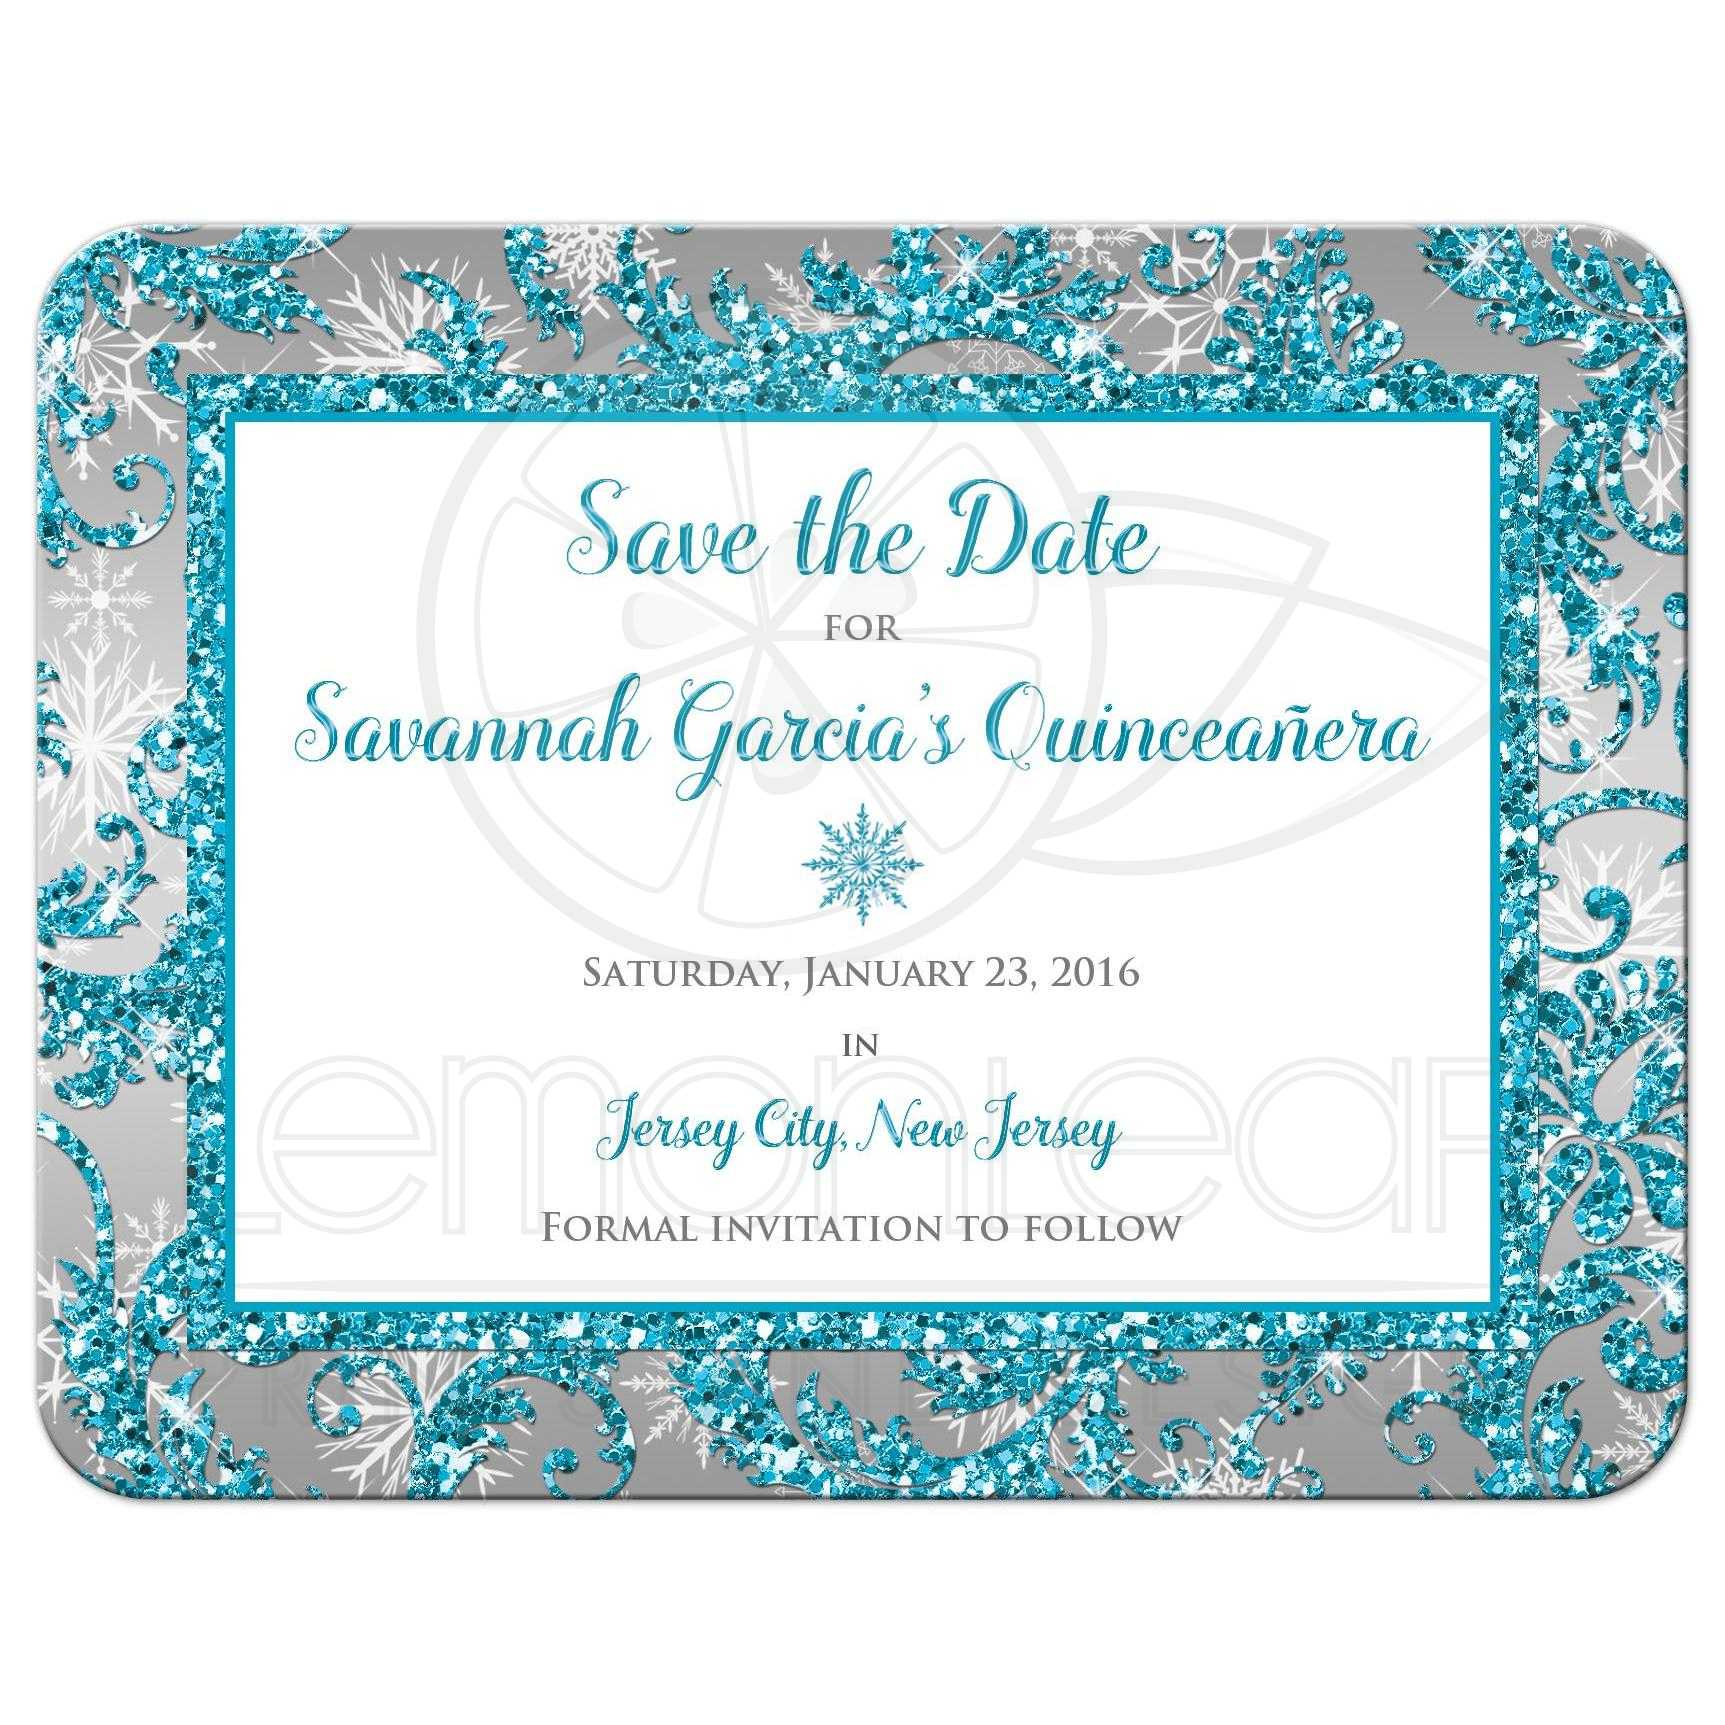 Quinceañera Save the Date Card | Winter Wonderland Turquoise, Silver ...